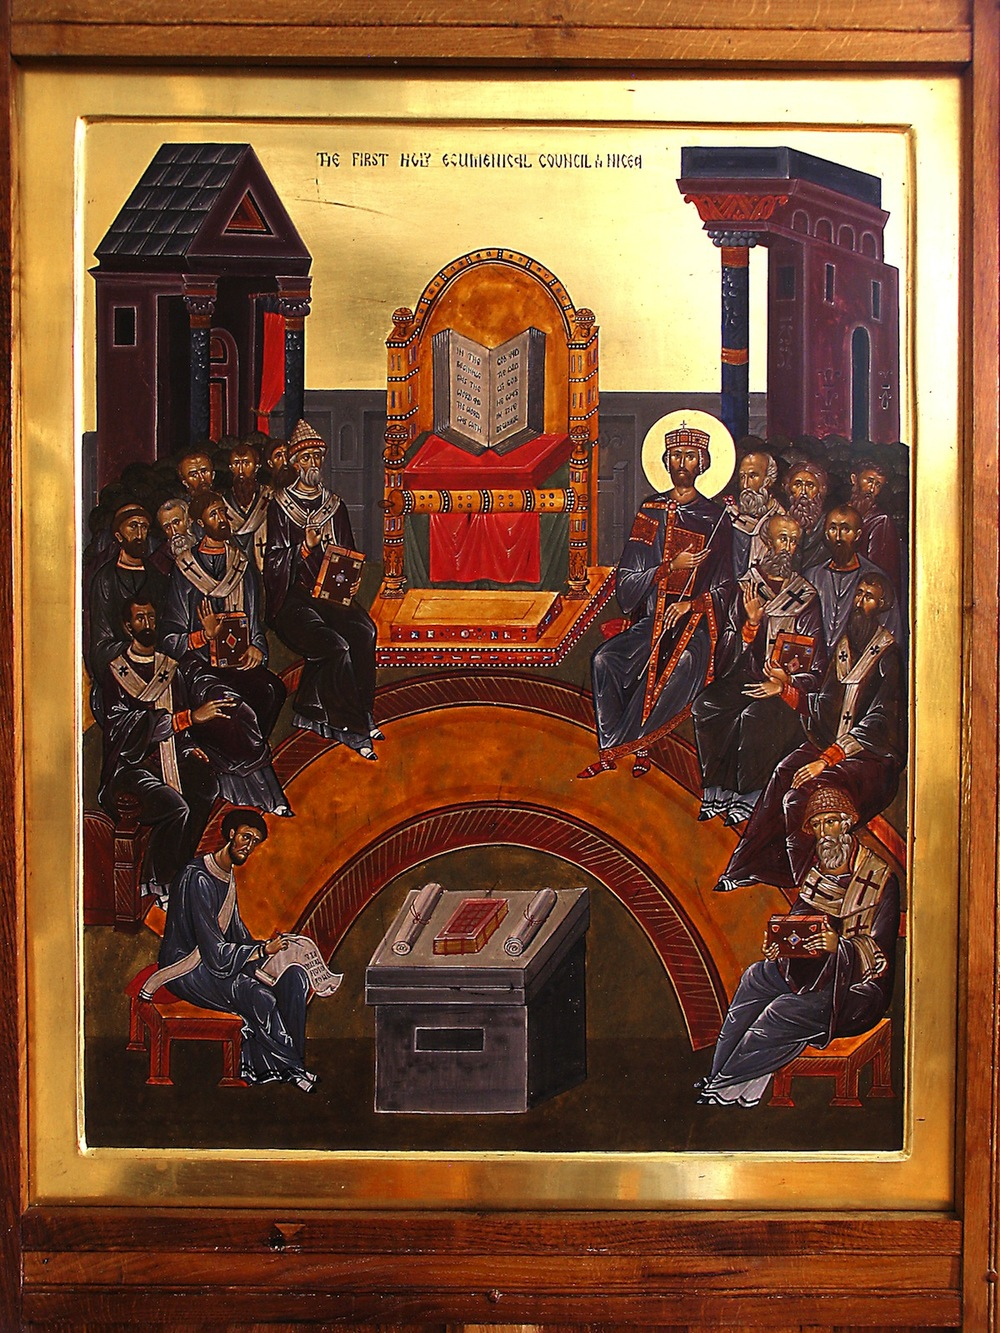 The Fathers of the First Ec. Synod